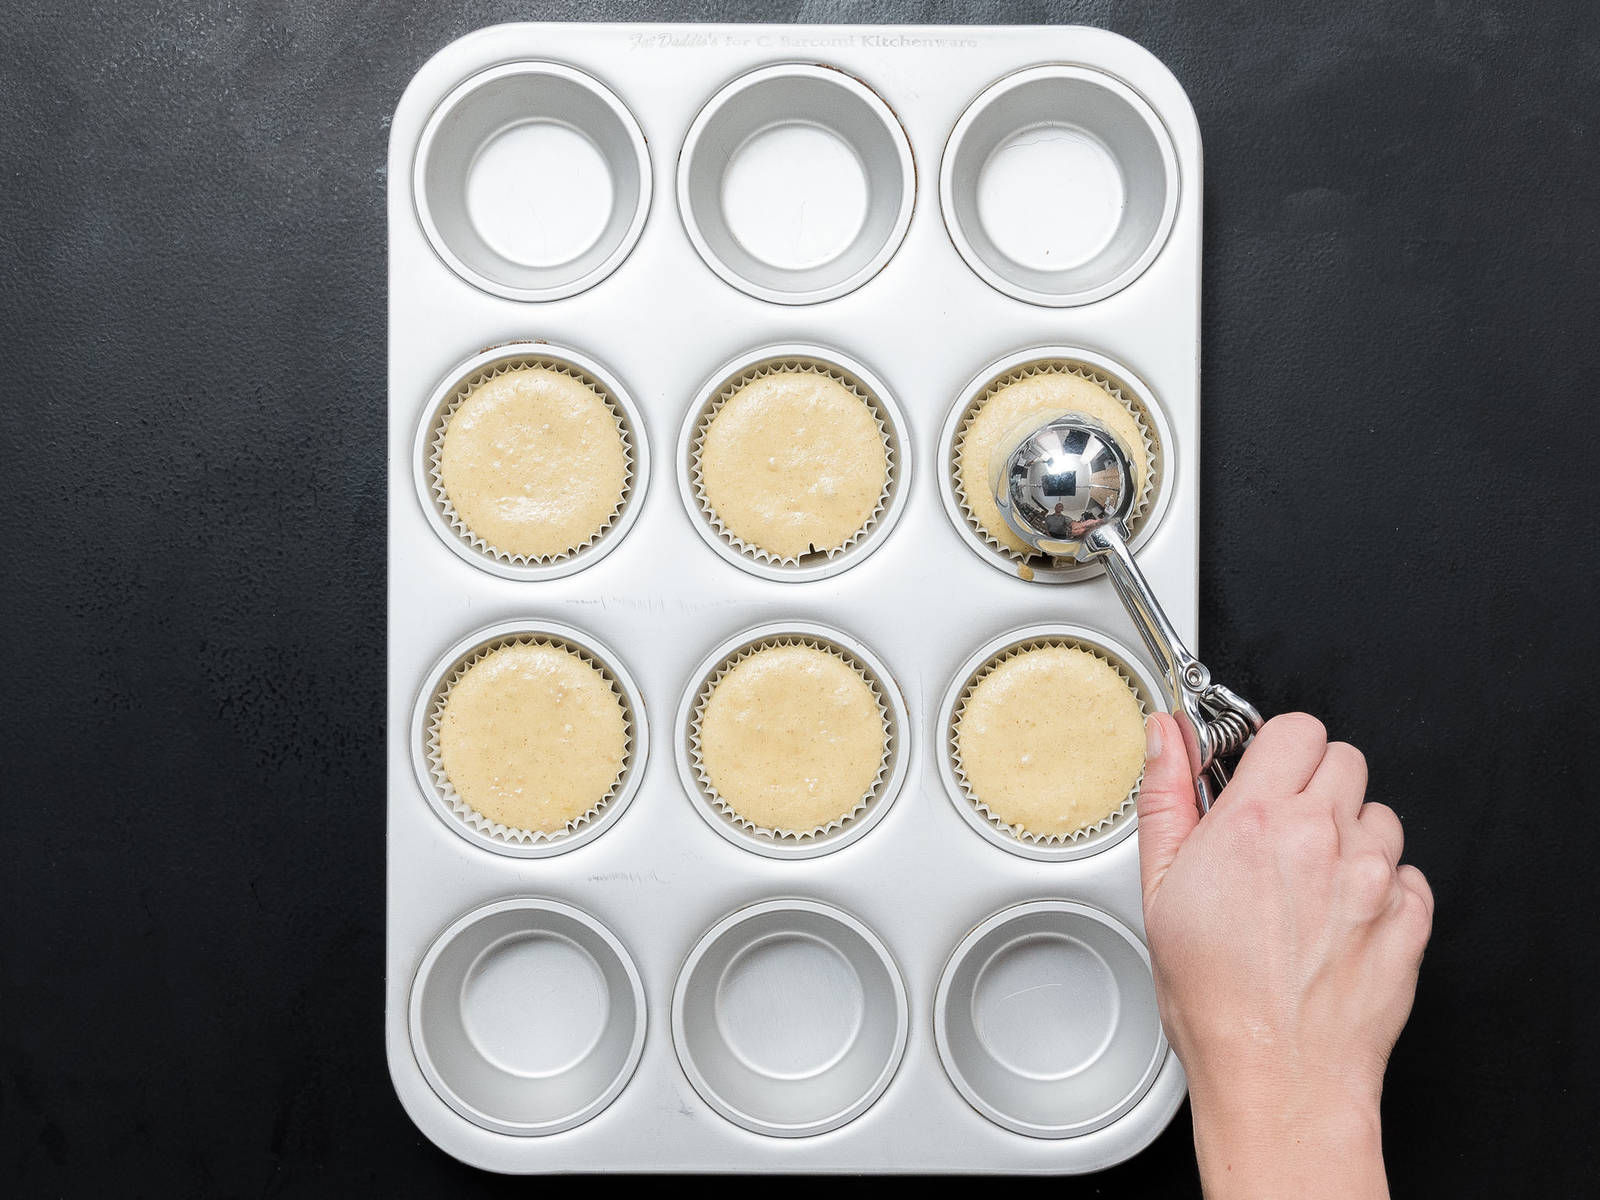 In another bowl, mix butter, sugar, and vanilla sugar. Add egg, oil, and rum extract to the mixture and beat to combine. Alternately add flour mixture and milk to the butter mixture and stir until dough is combined. Stir in nuts. Line muffin tin, and fill each mold up to ¾ with batter. Bake at 180ºC/350ºF for approx. 20 min., until golden brown. Remove from oven and set aside to cool.